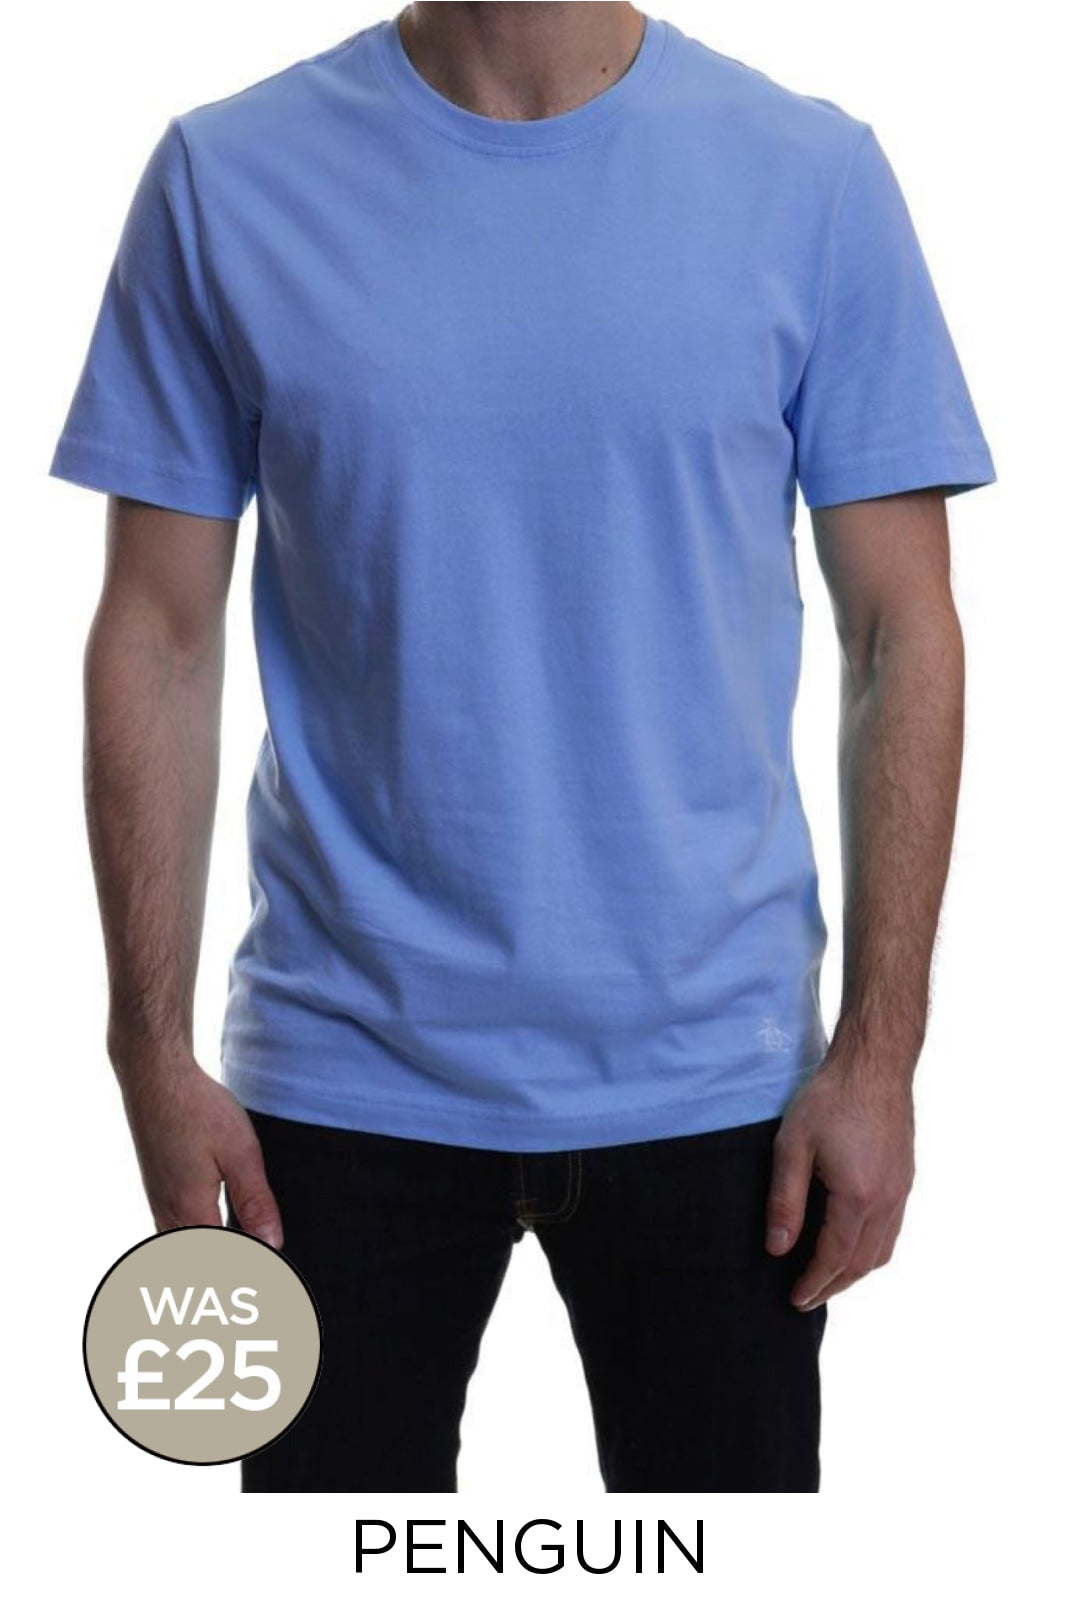 Penguin Original Pinpoint T-Shirts | XL / Corn Flower Blue Secret Label